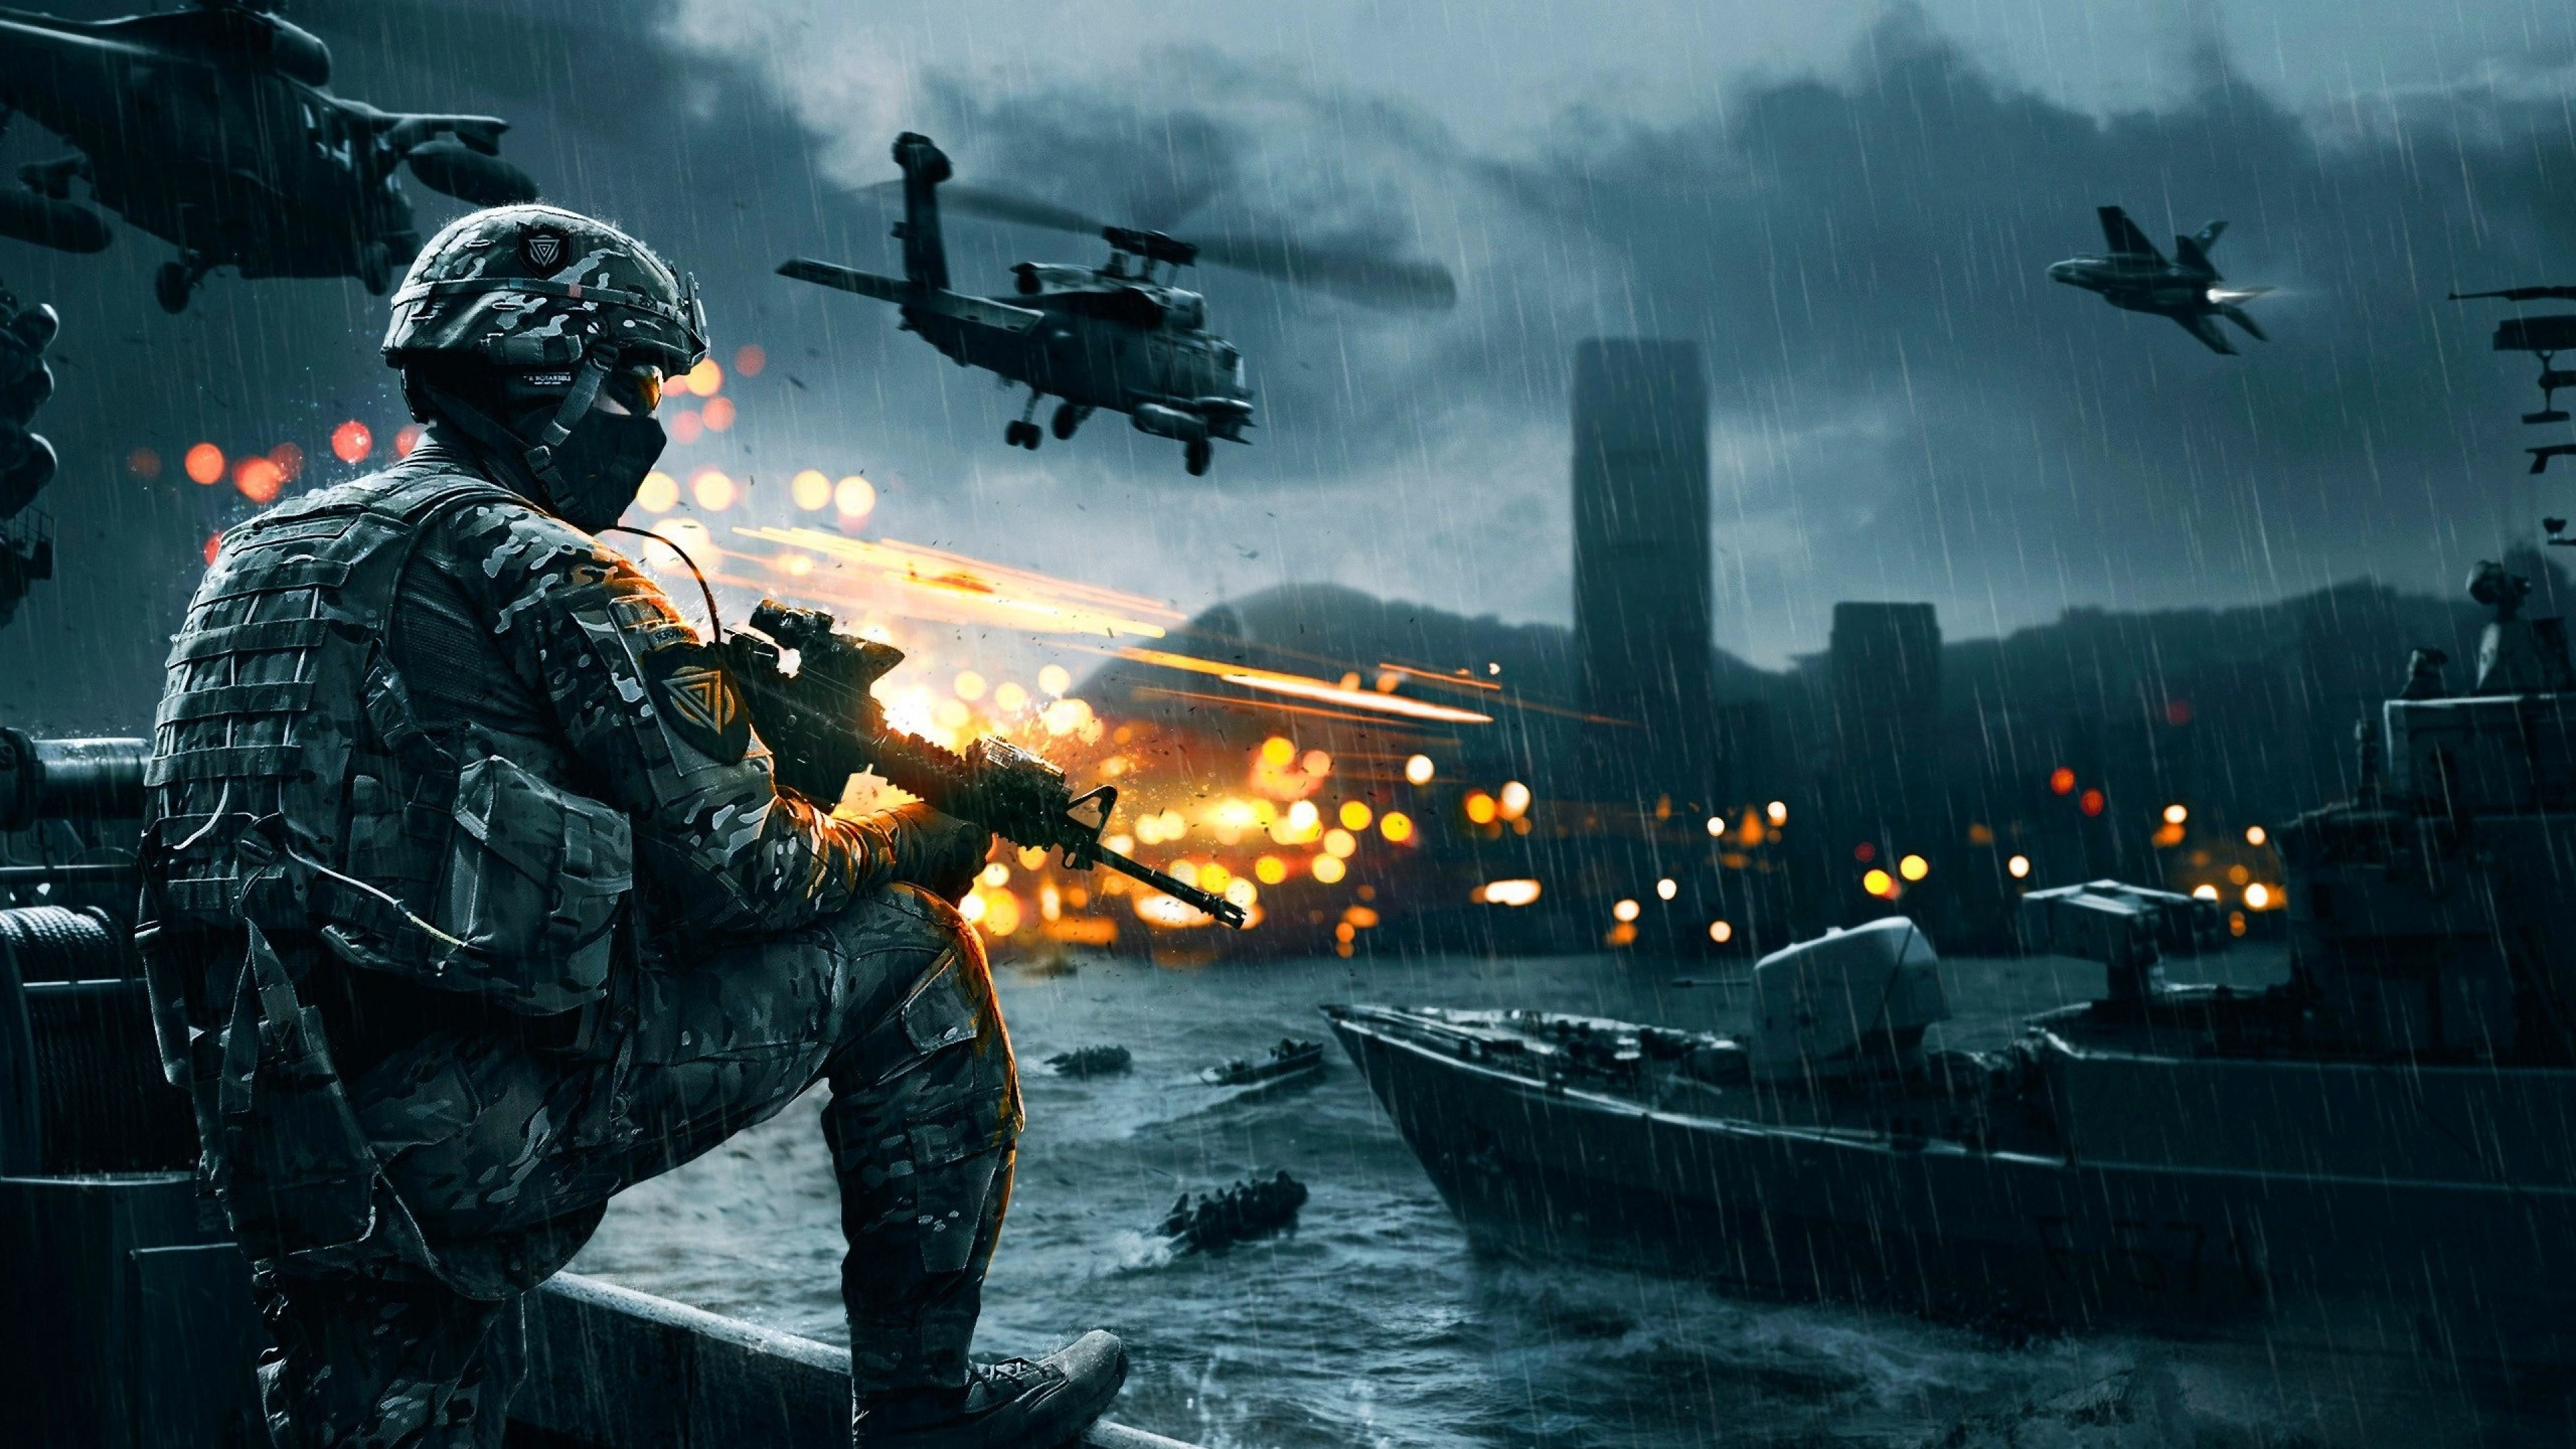 battlefield 4, hd games, 4k wallpapers, images, backgrounds, photos